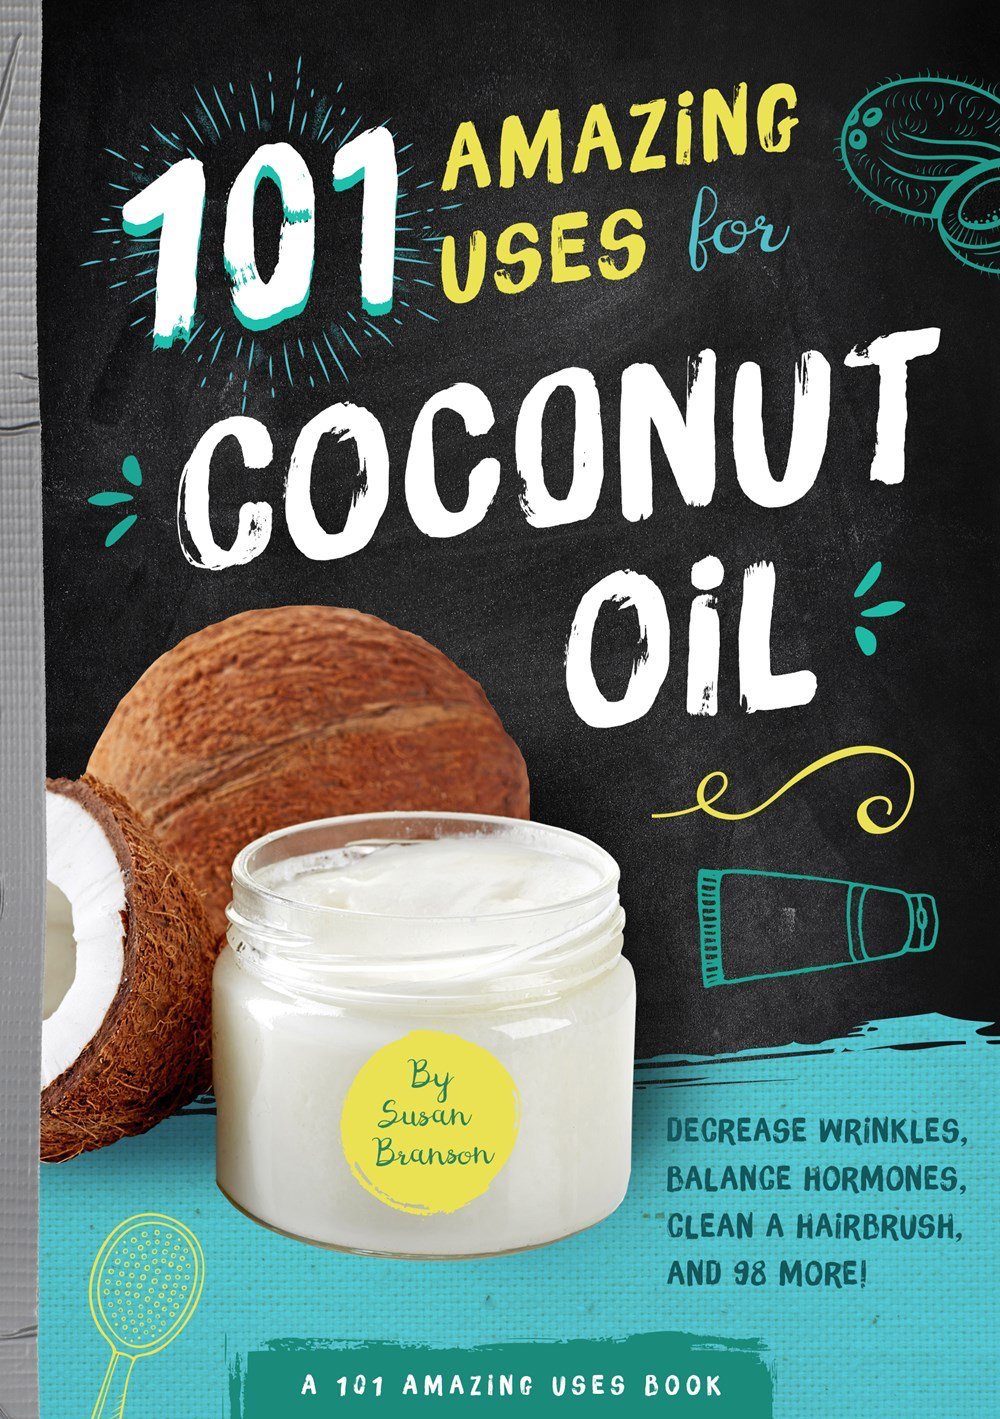 101 Amazing Ways to Use Coconut Oil: Reduce Wrinkles, Balance Hormones, Clean a Hairbrush and 98 More! (101 Amazing Uses)